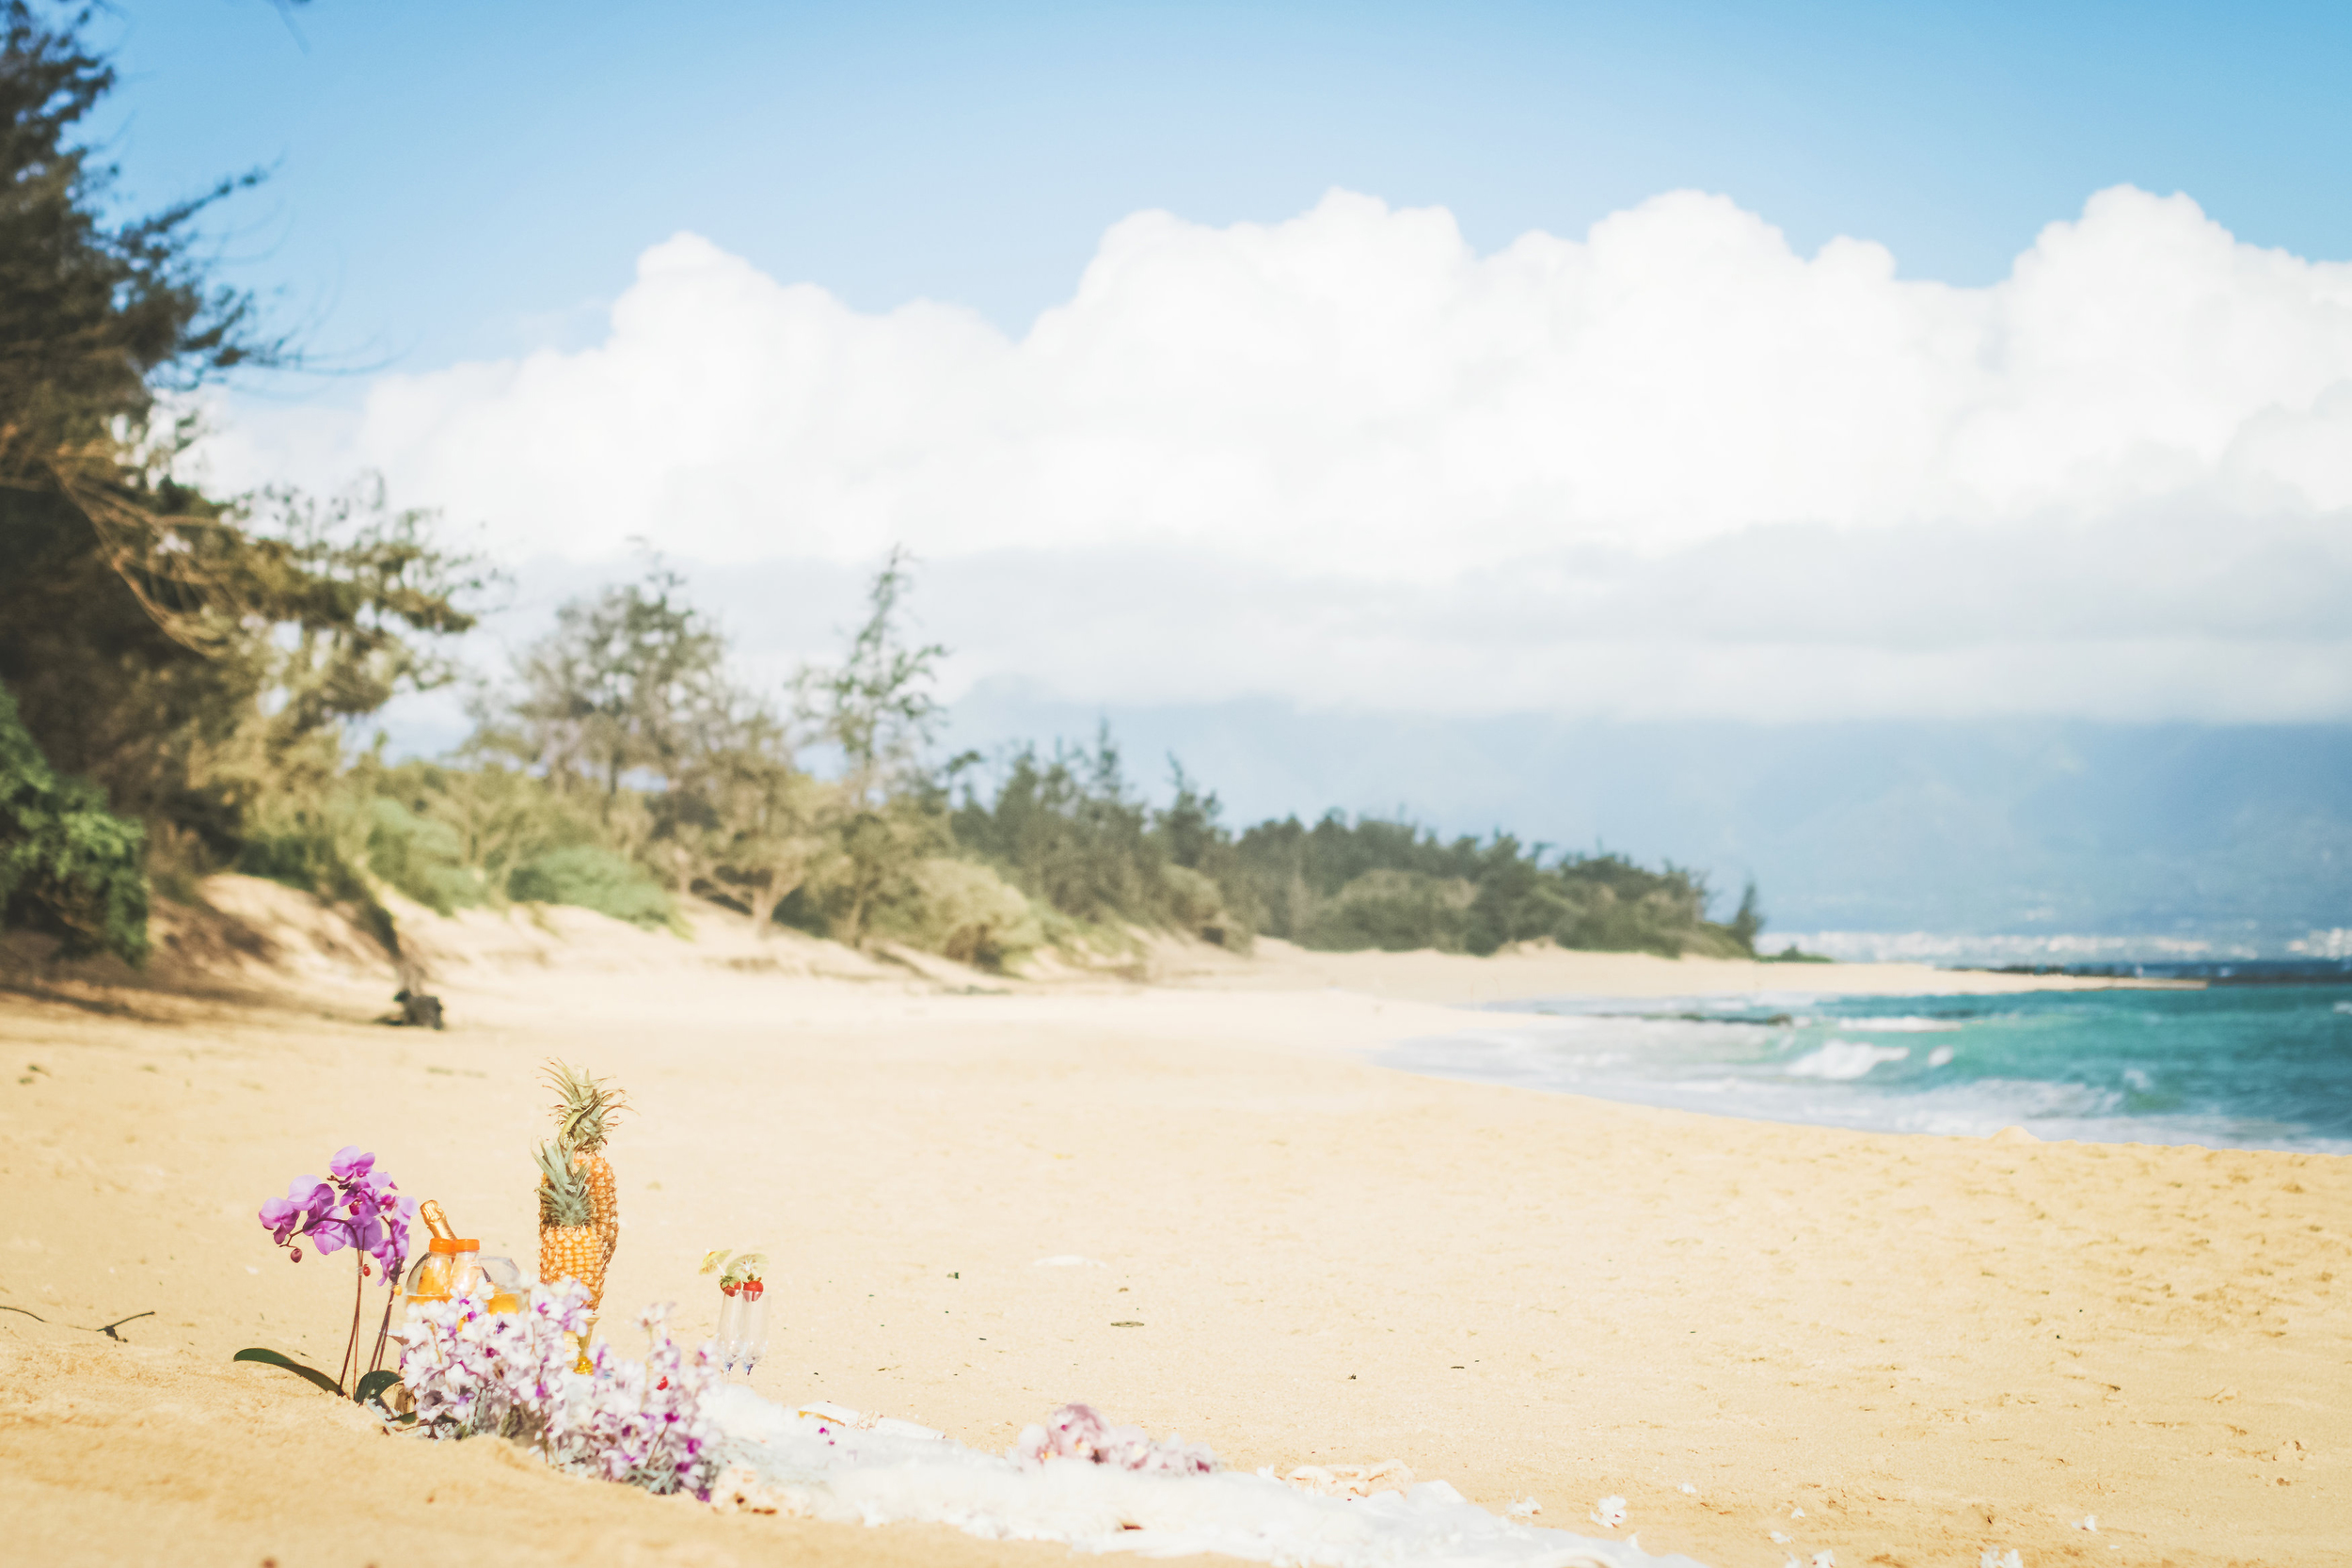 angie-diaz-photography-maui-proposal-baldwin-beach-aimee-tyler-7.jpg